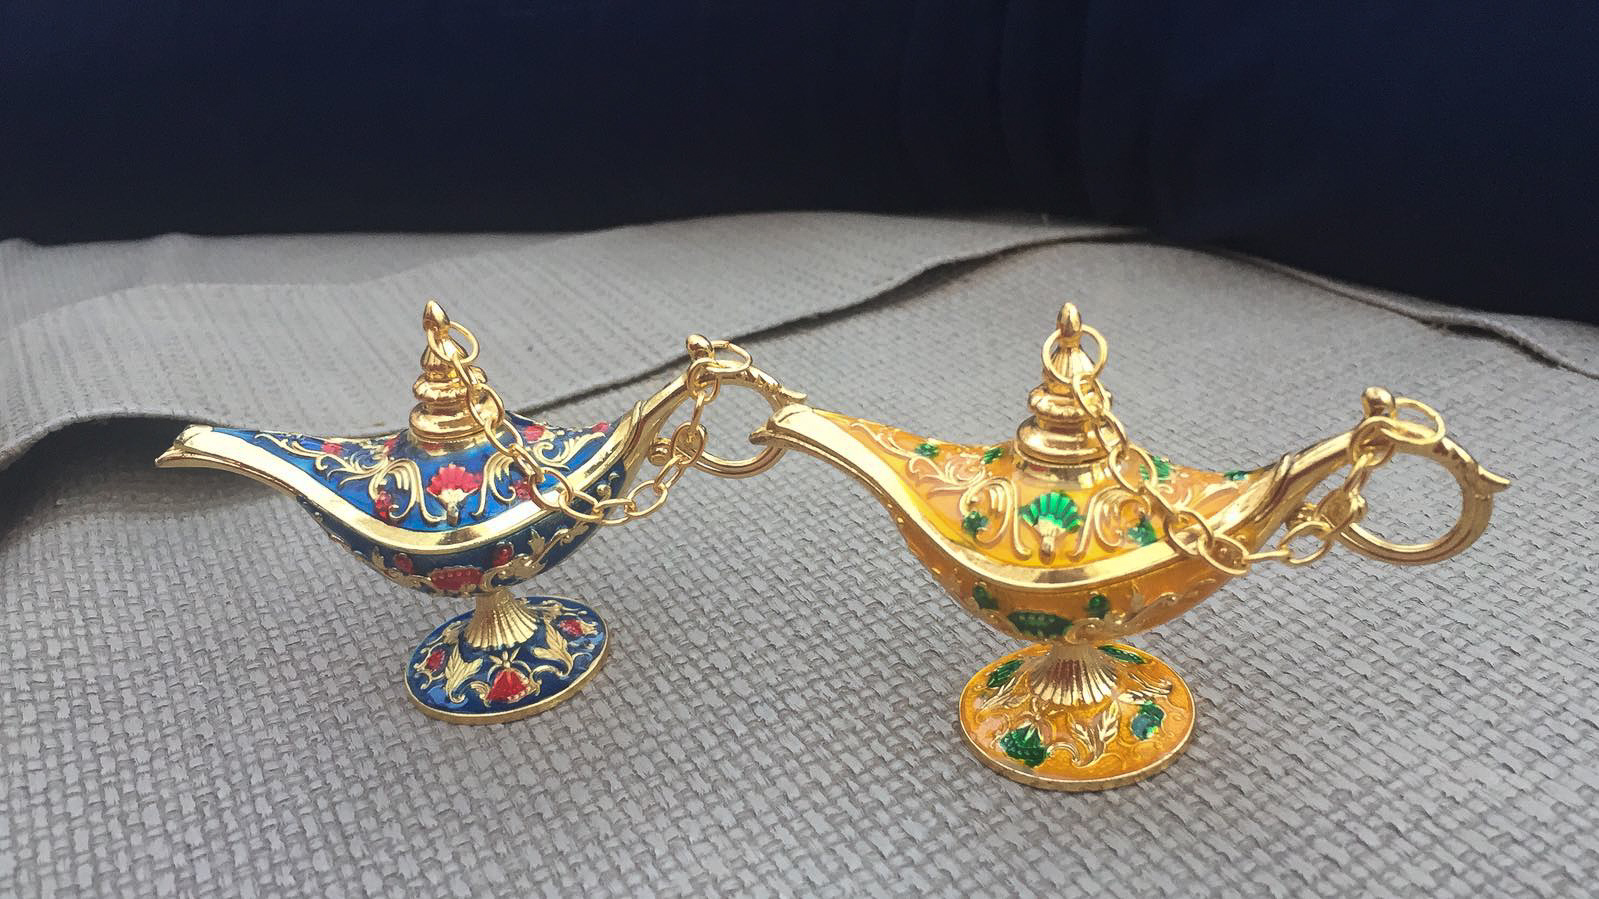 You can fill these little lamps with scented oils, bringing back a little bit of Morocco to your home